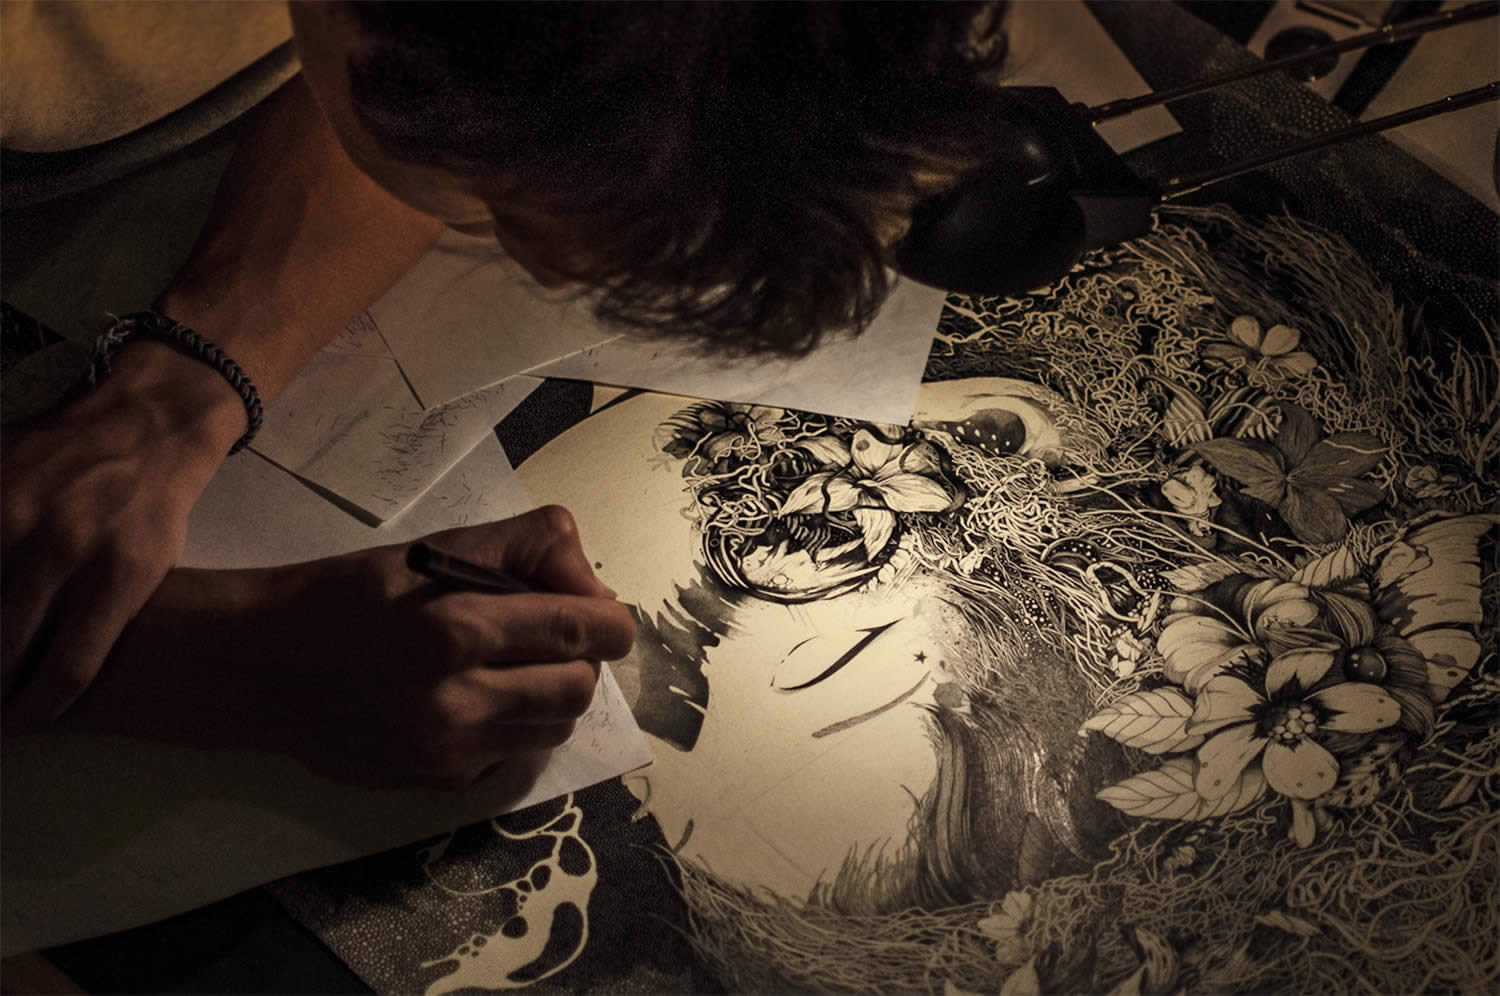 artist benze drawing in his studio